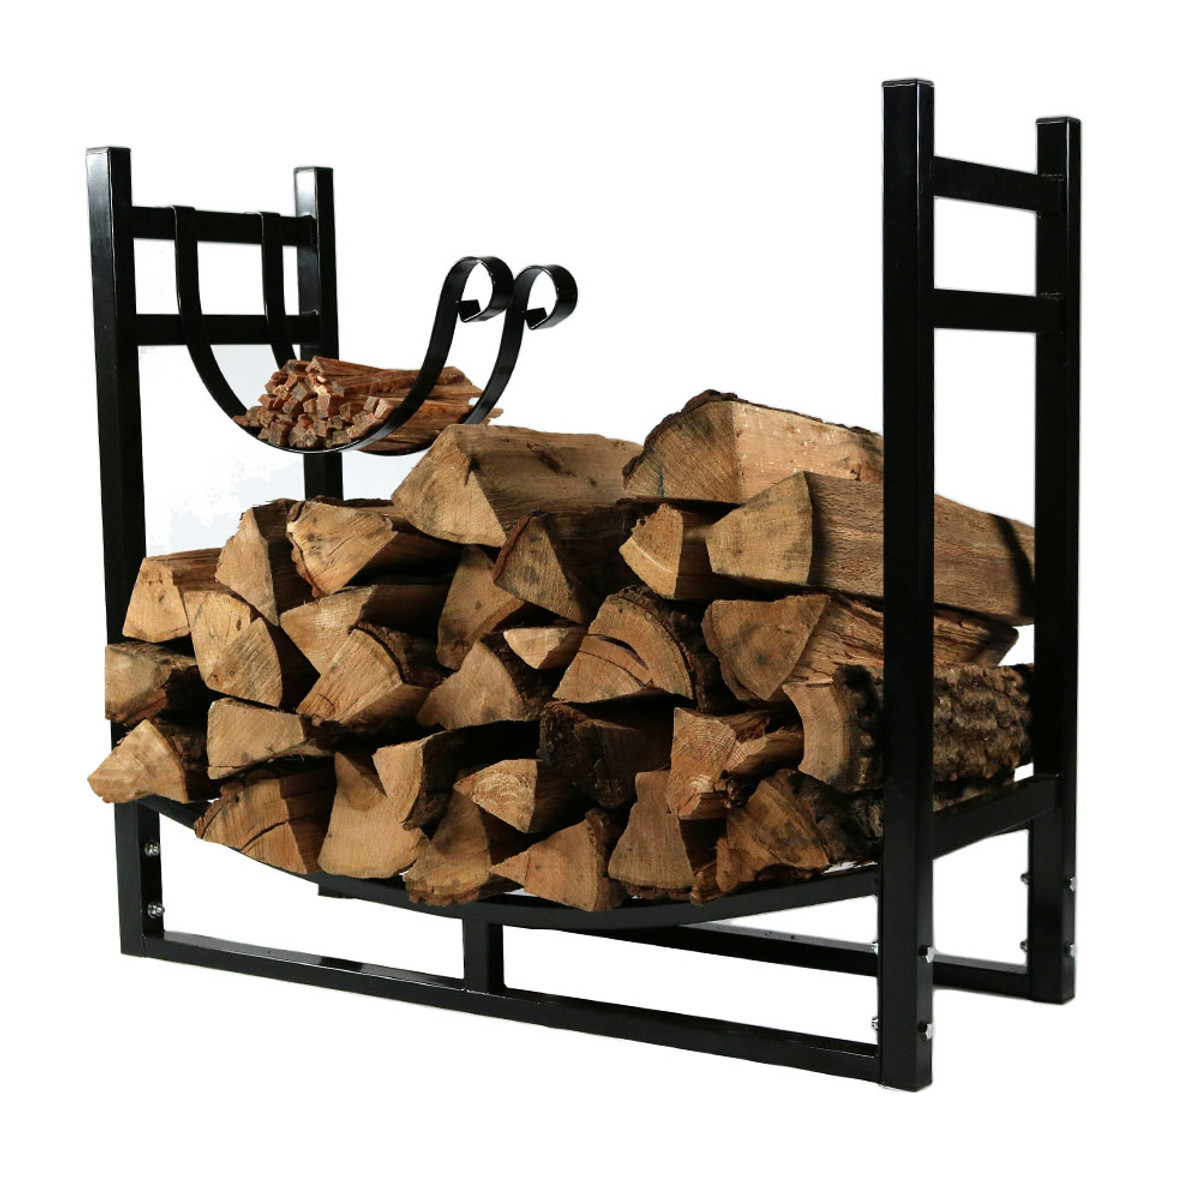 Outdoor Firewood Rack Sunnydaze 33 Inch Firewood Log Rack With Kindling Holder Fire Pits